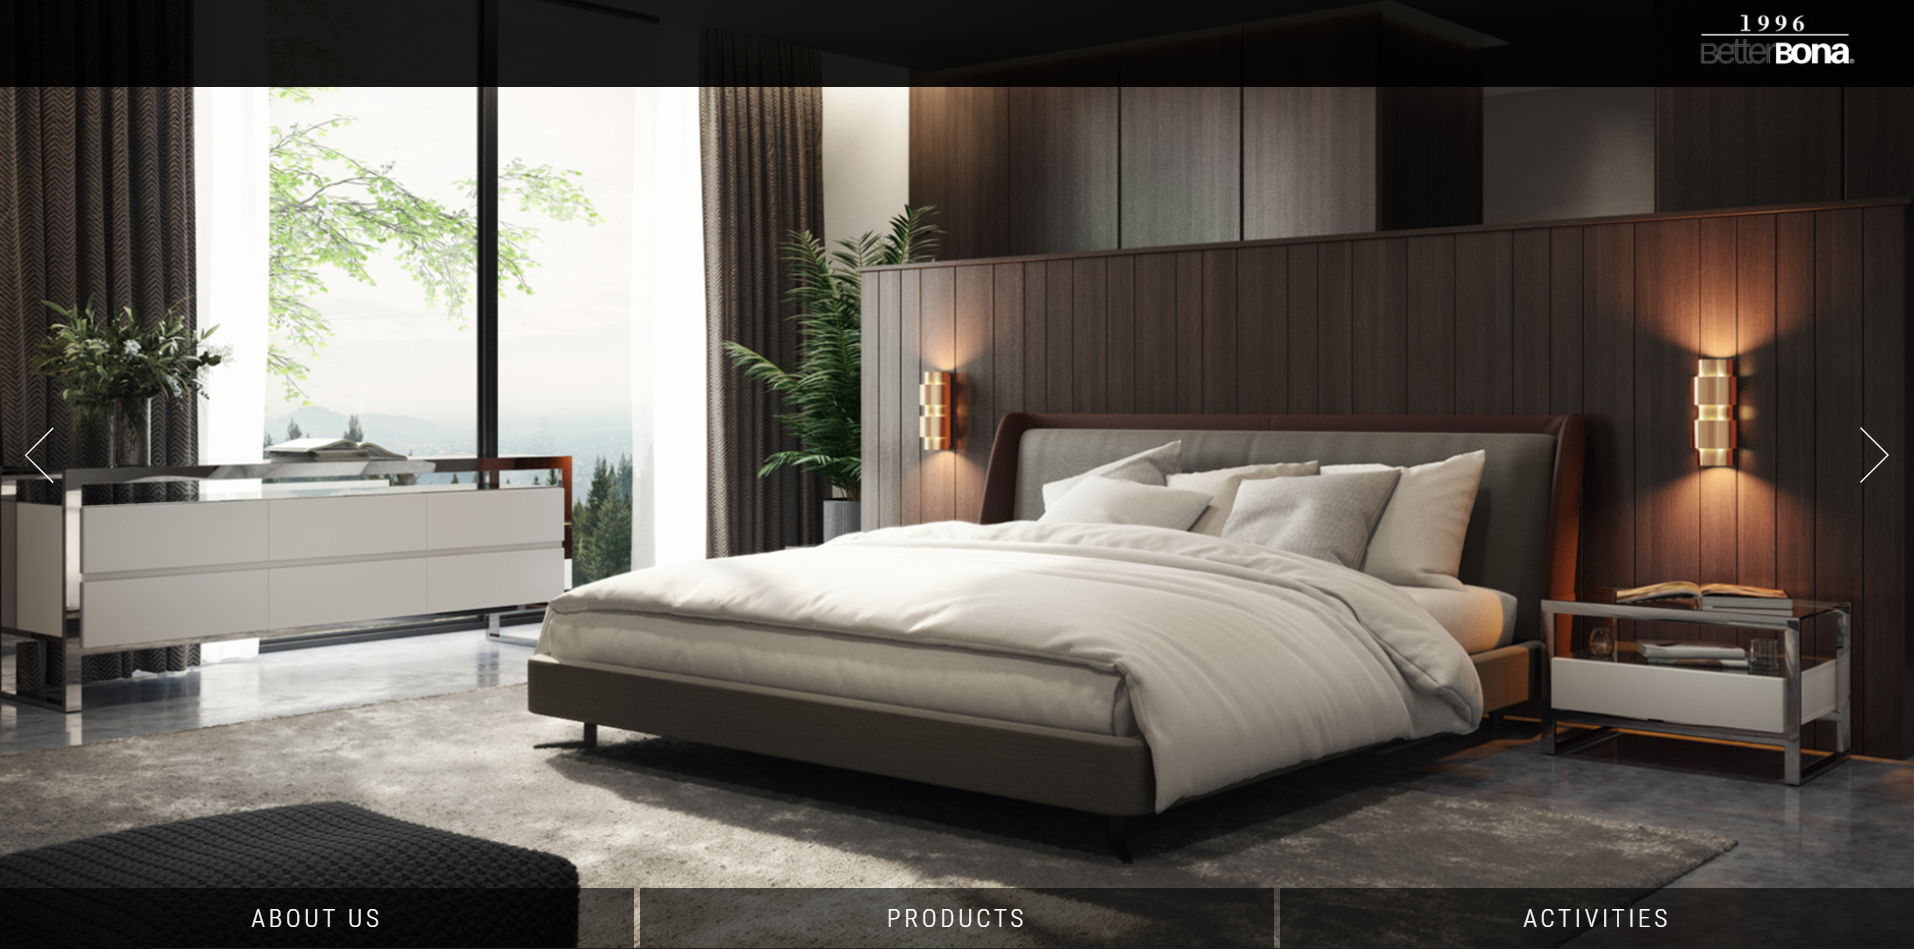 Product CGI for a Furniture Manufacturer's Website